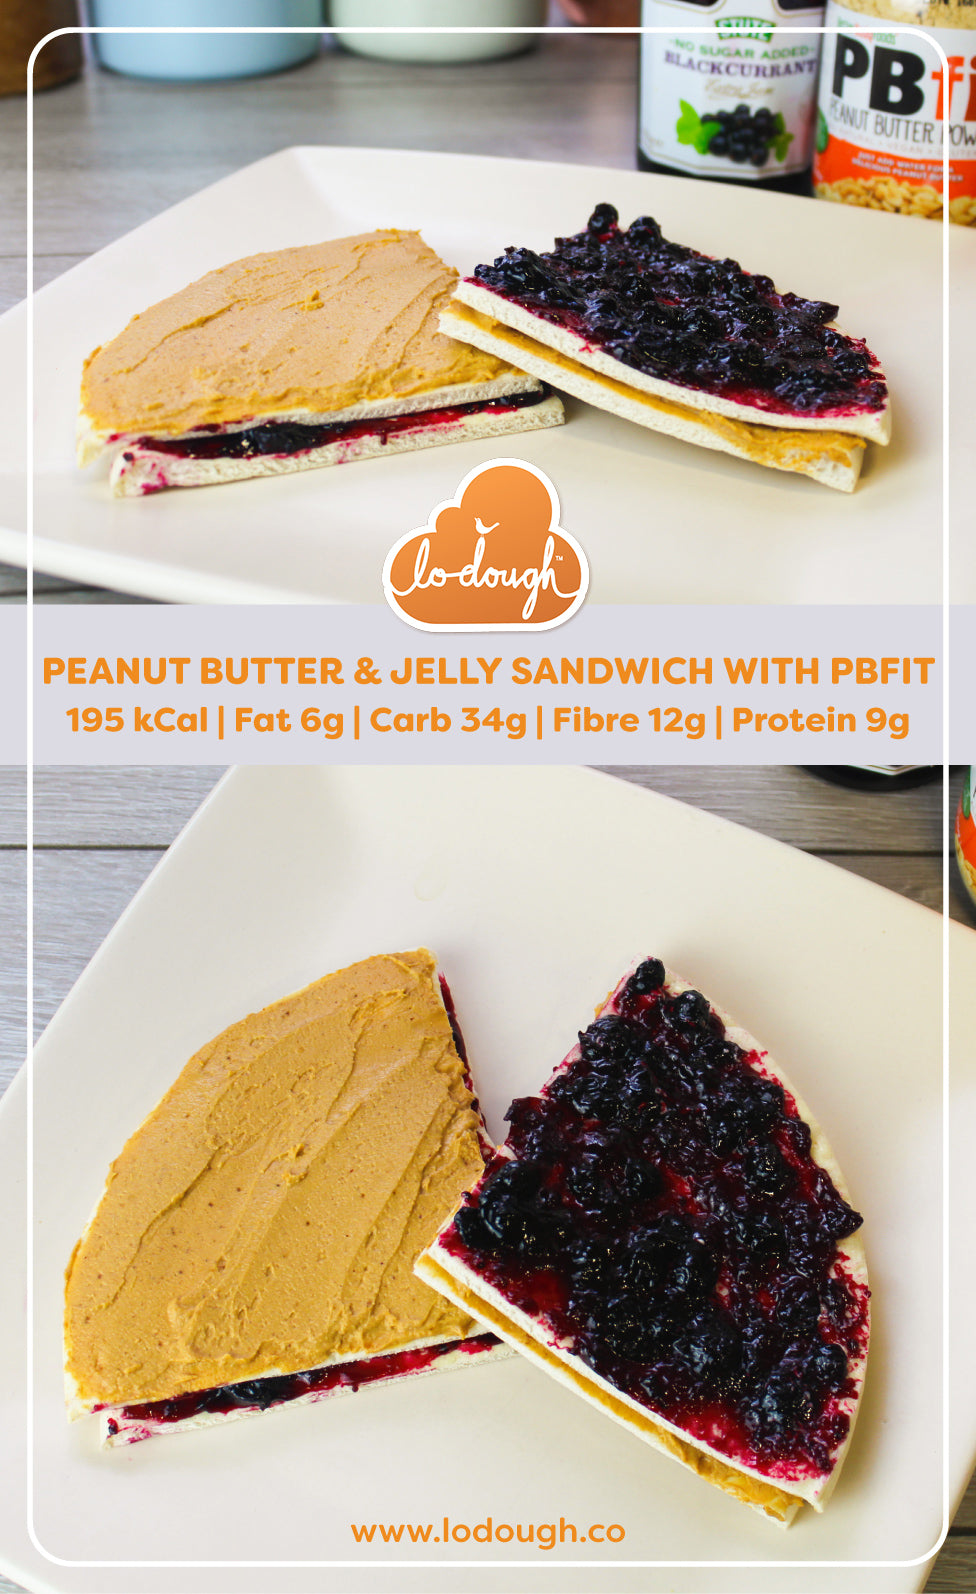 Peanut Butter & Jelly Sandwich with PBfit